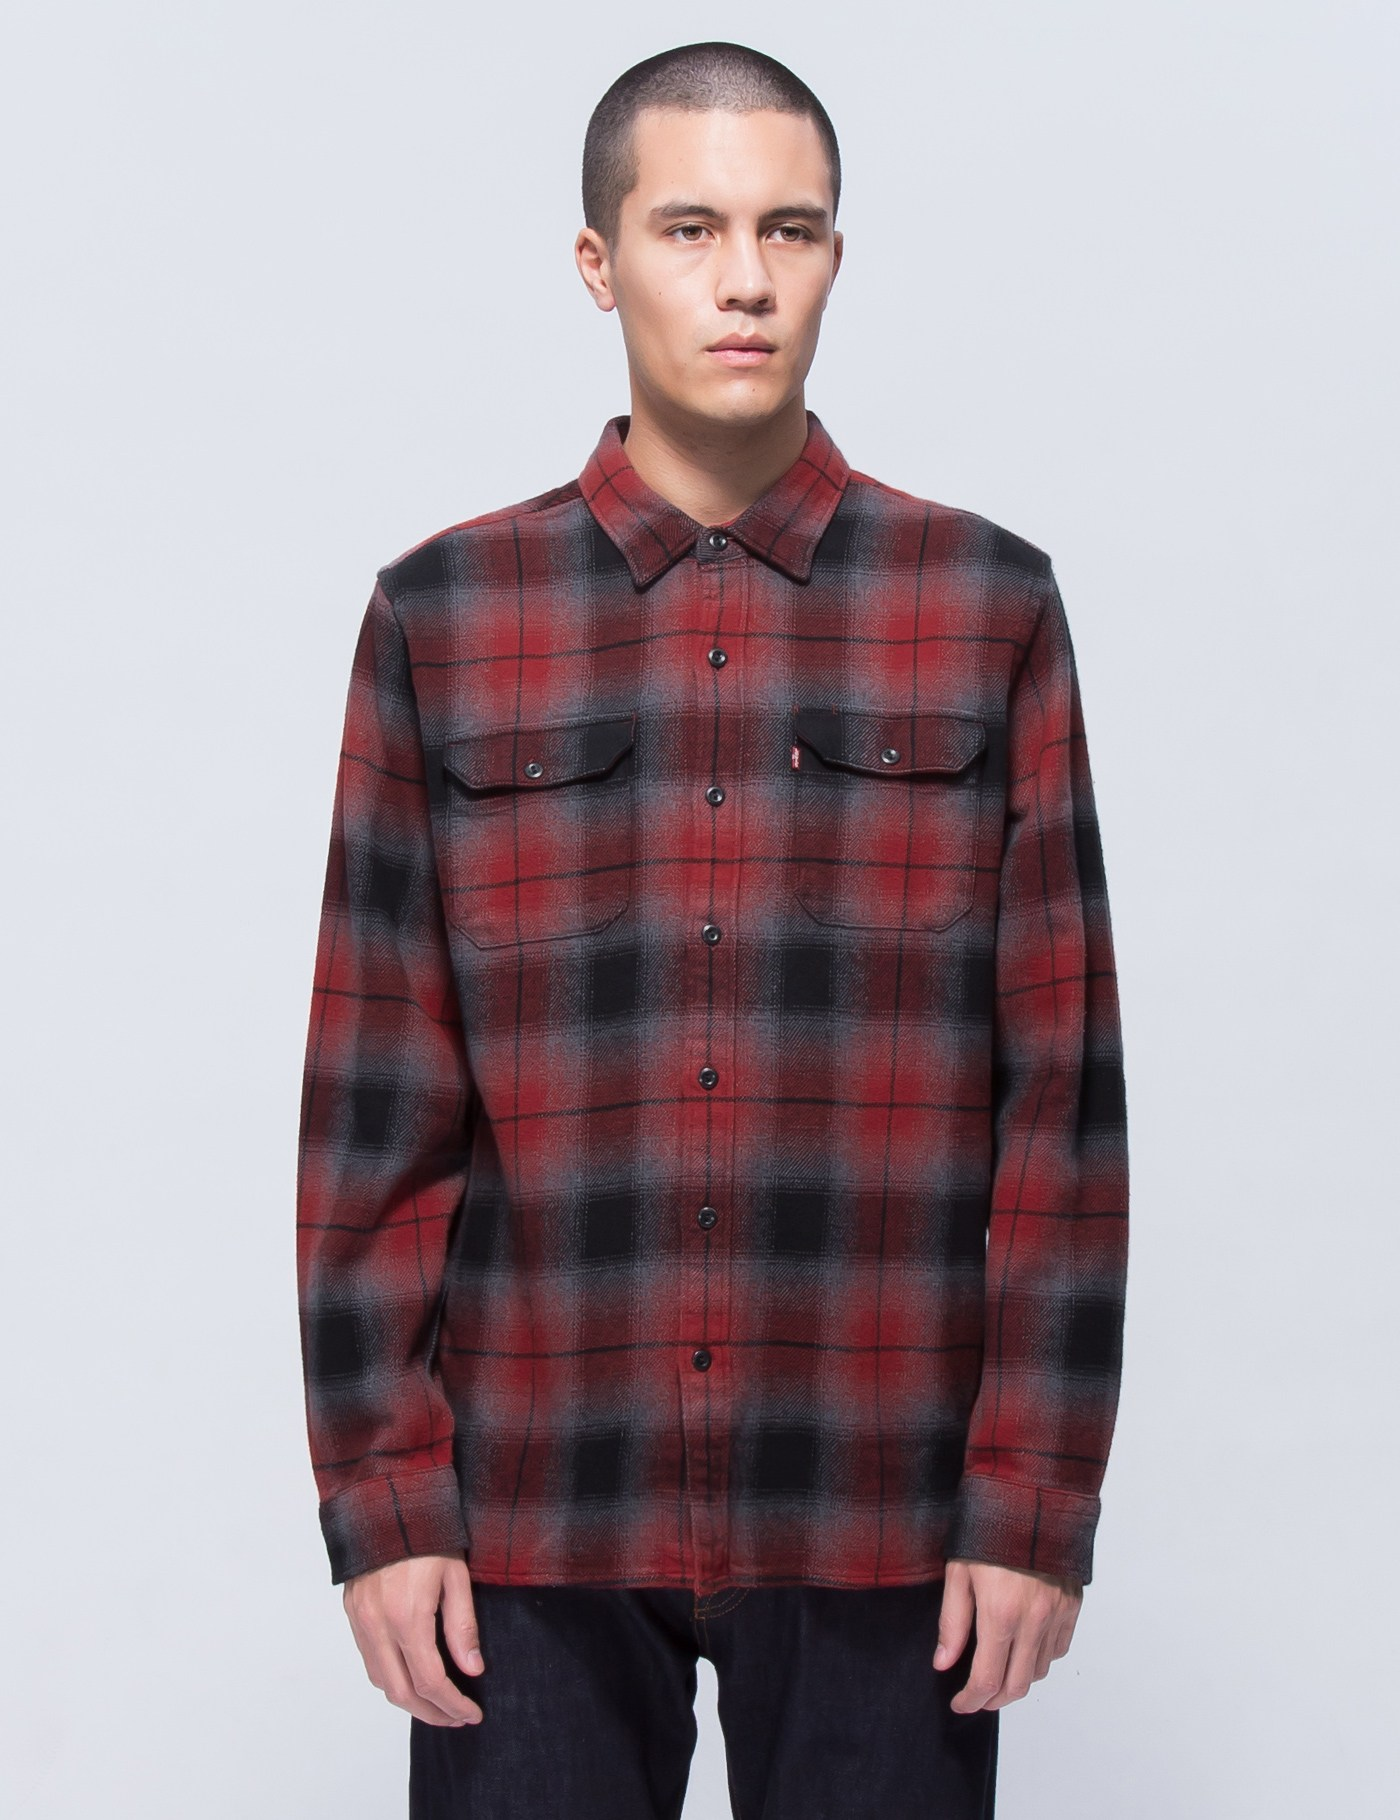 7bfe9a63352 Buy Original Levi s Clove Sun Dried Tomato Plaid L S Worker Shirt at ...